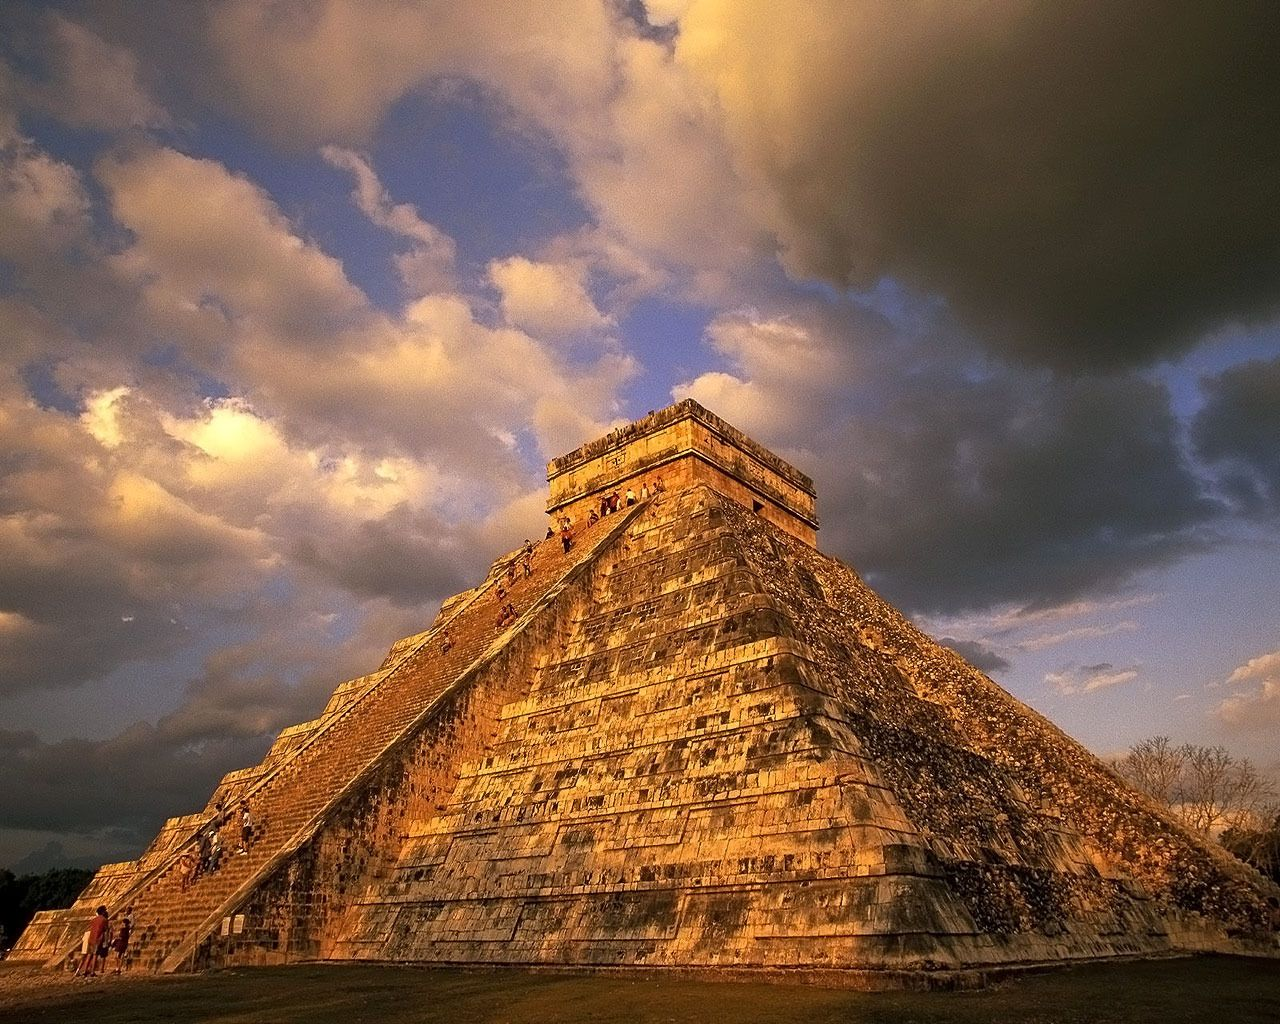 Did Belief in Gods Lead to Mayan Demise?